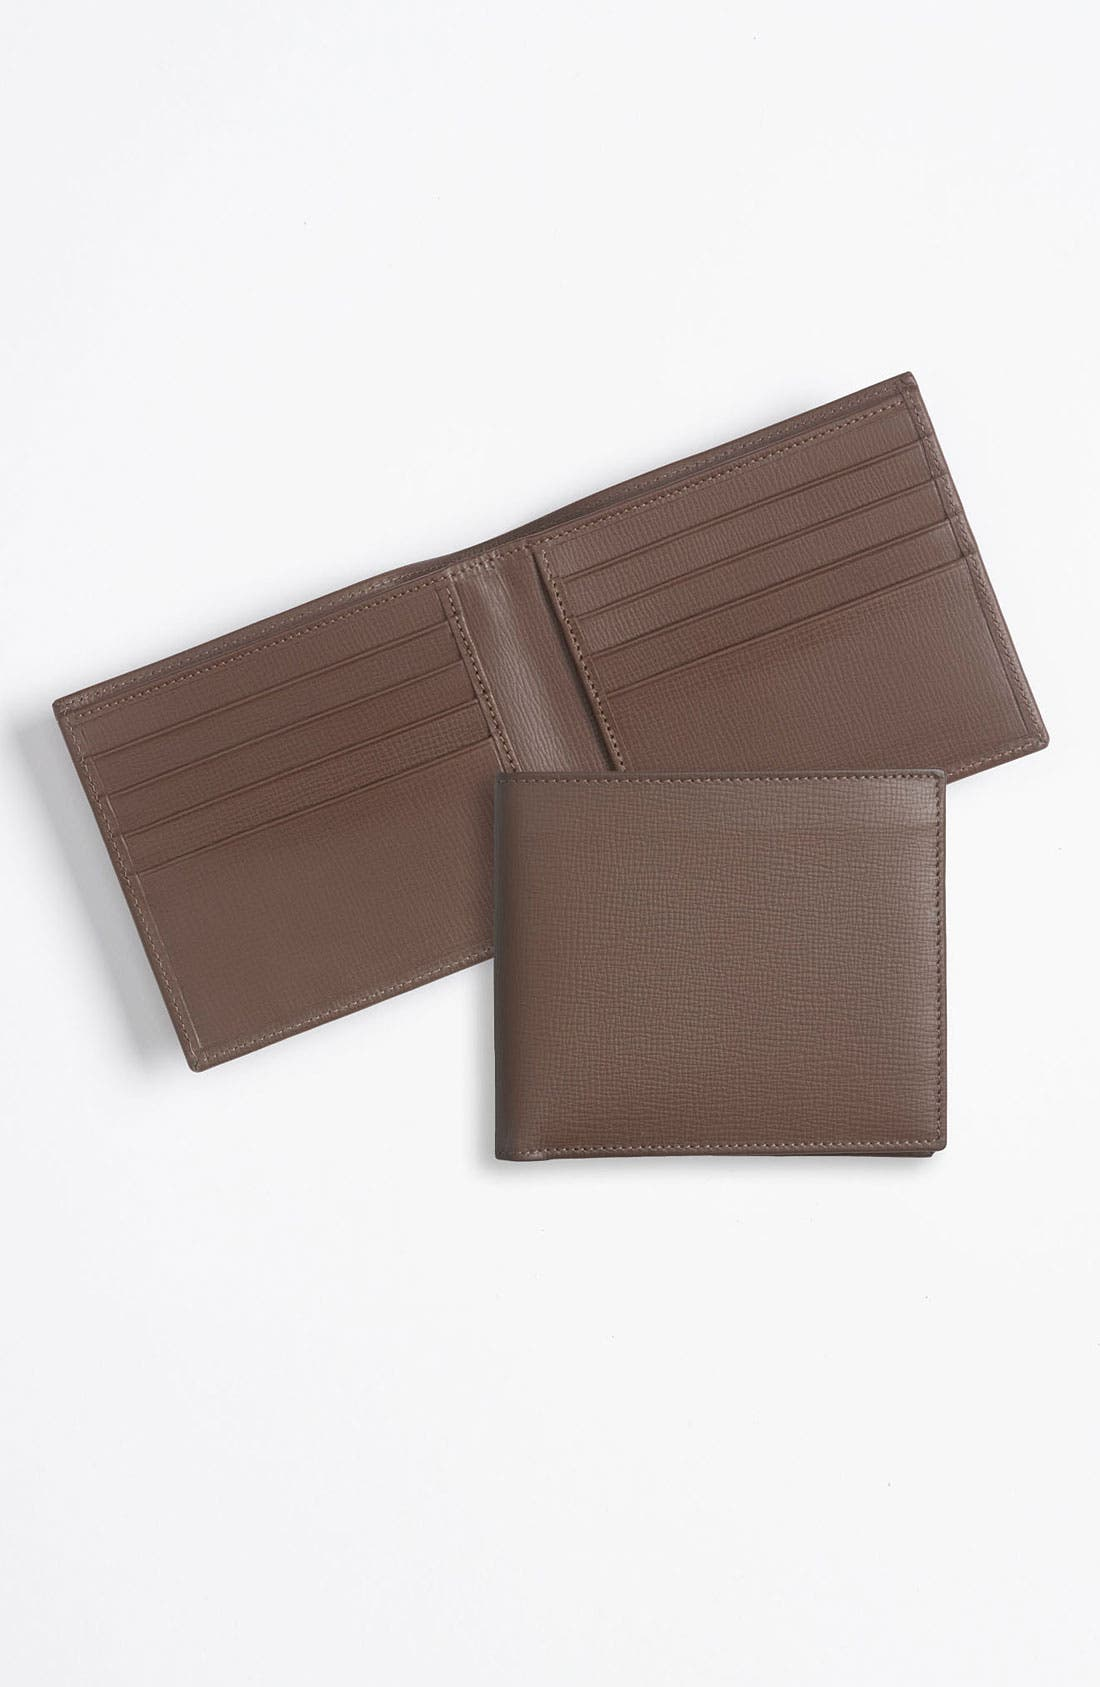 Main Image - Bruno Magli Leather Wallet